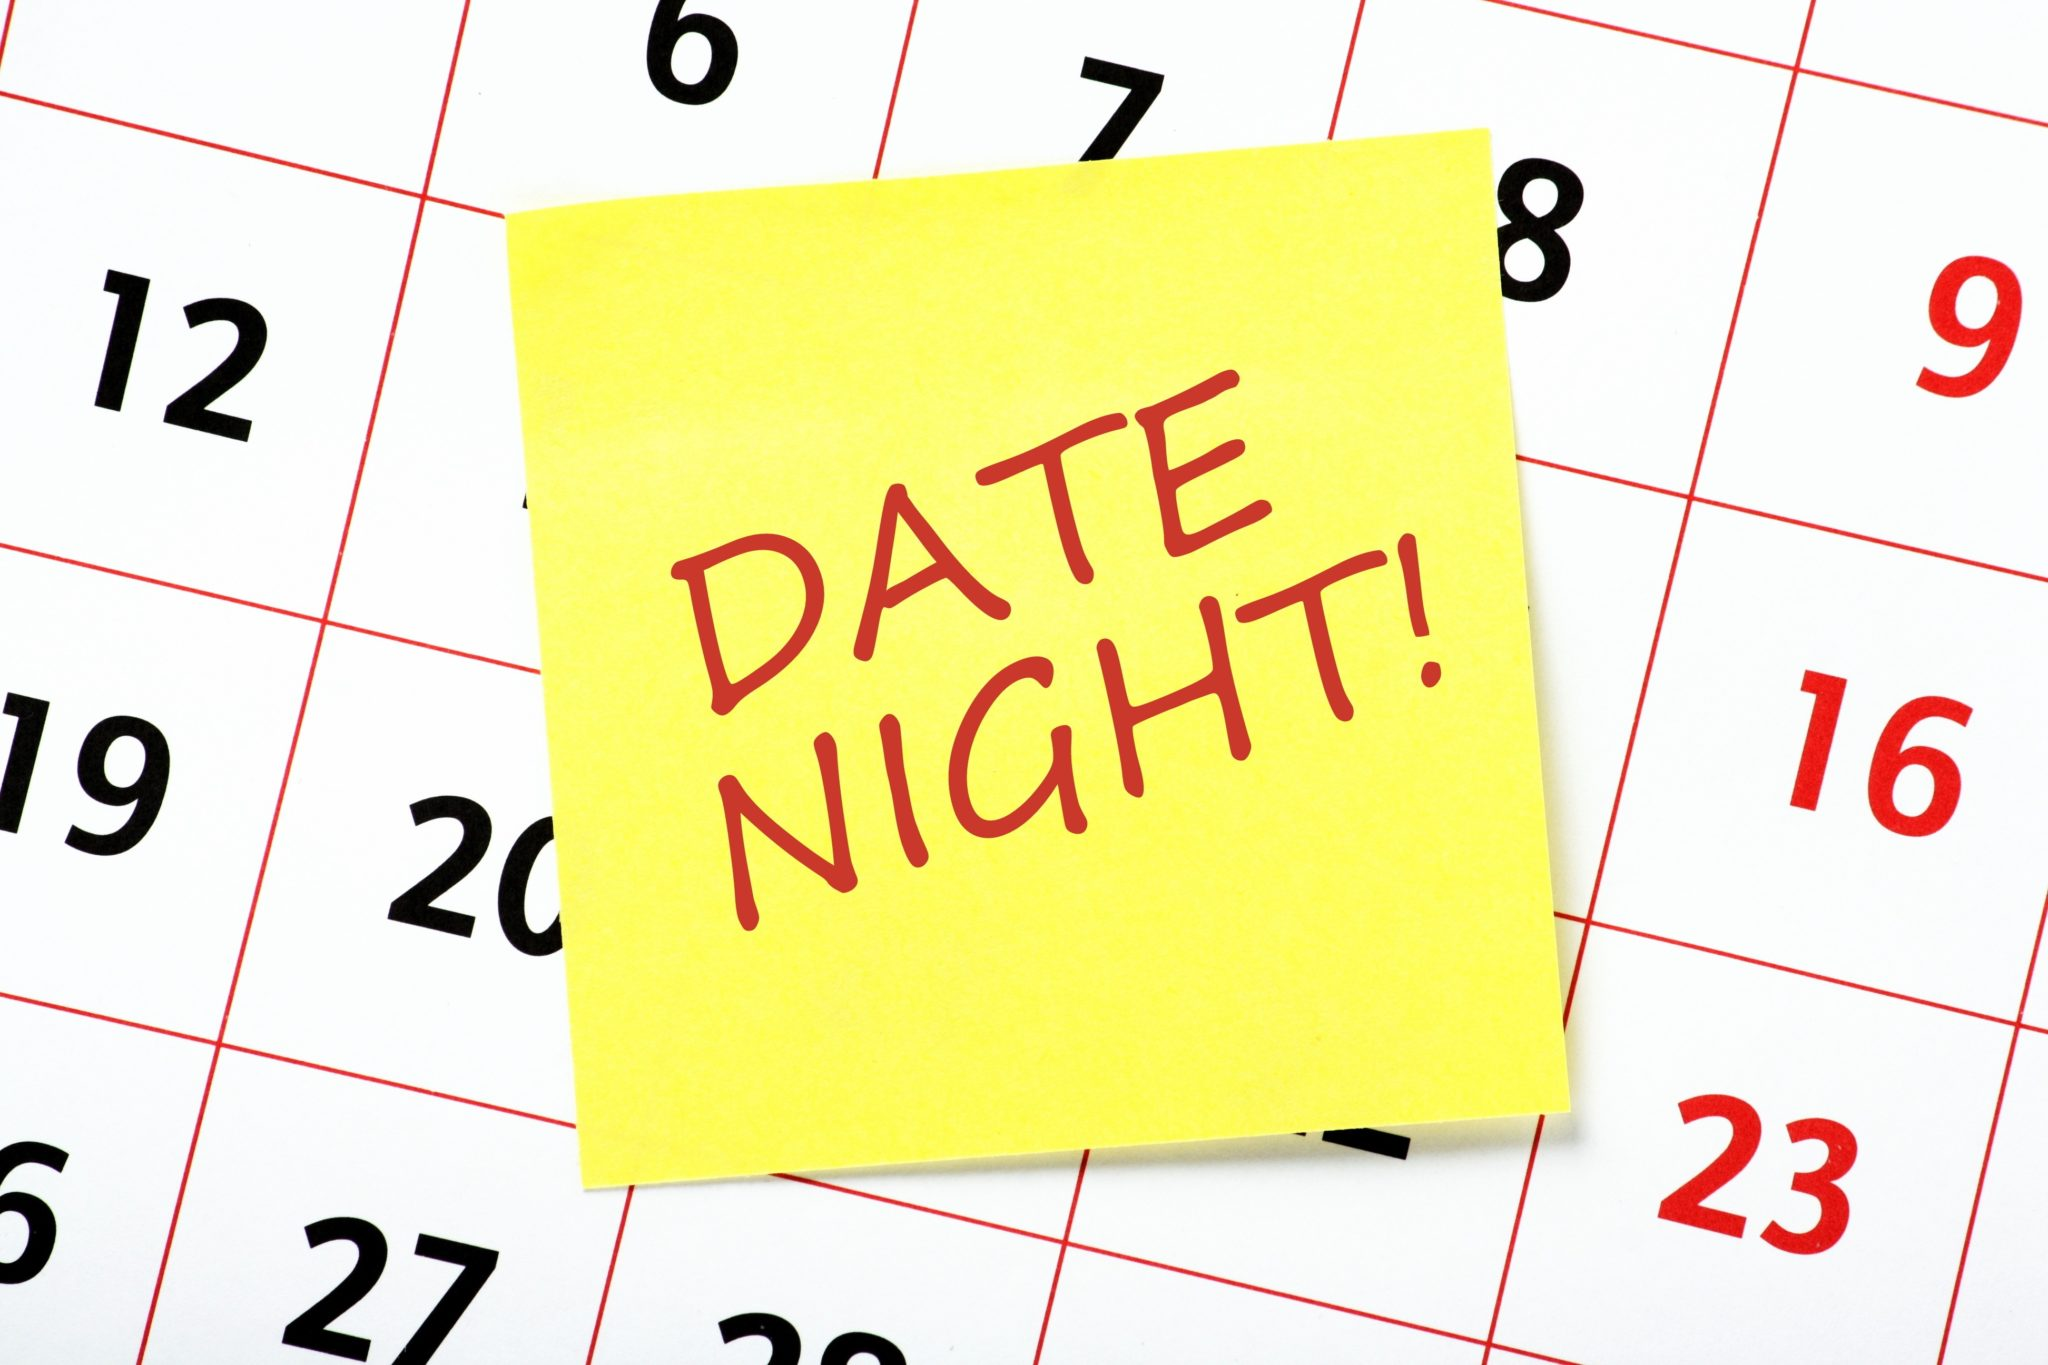 Dollar Photo Date Nights reminder note attached to a calendar